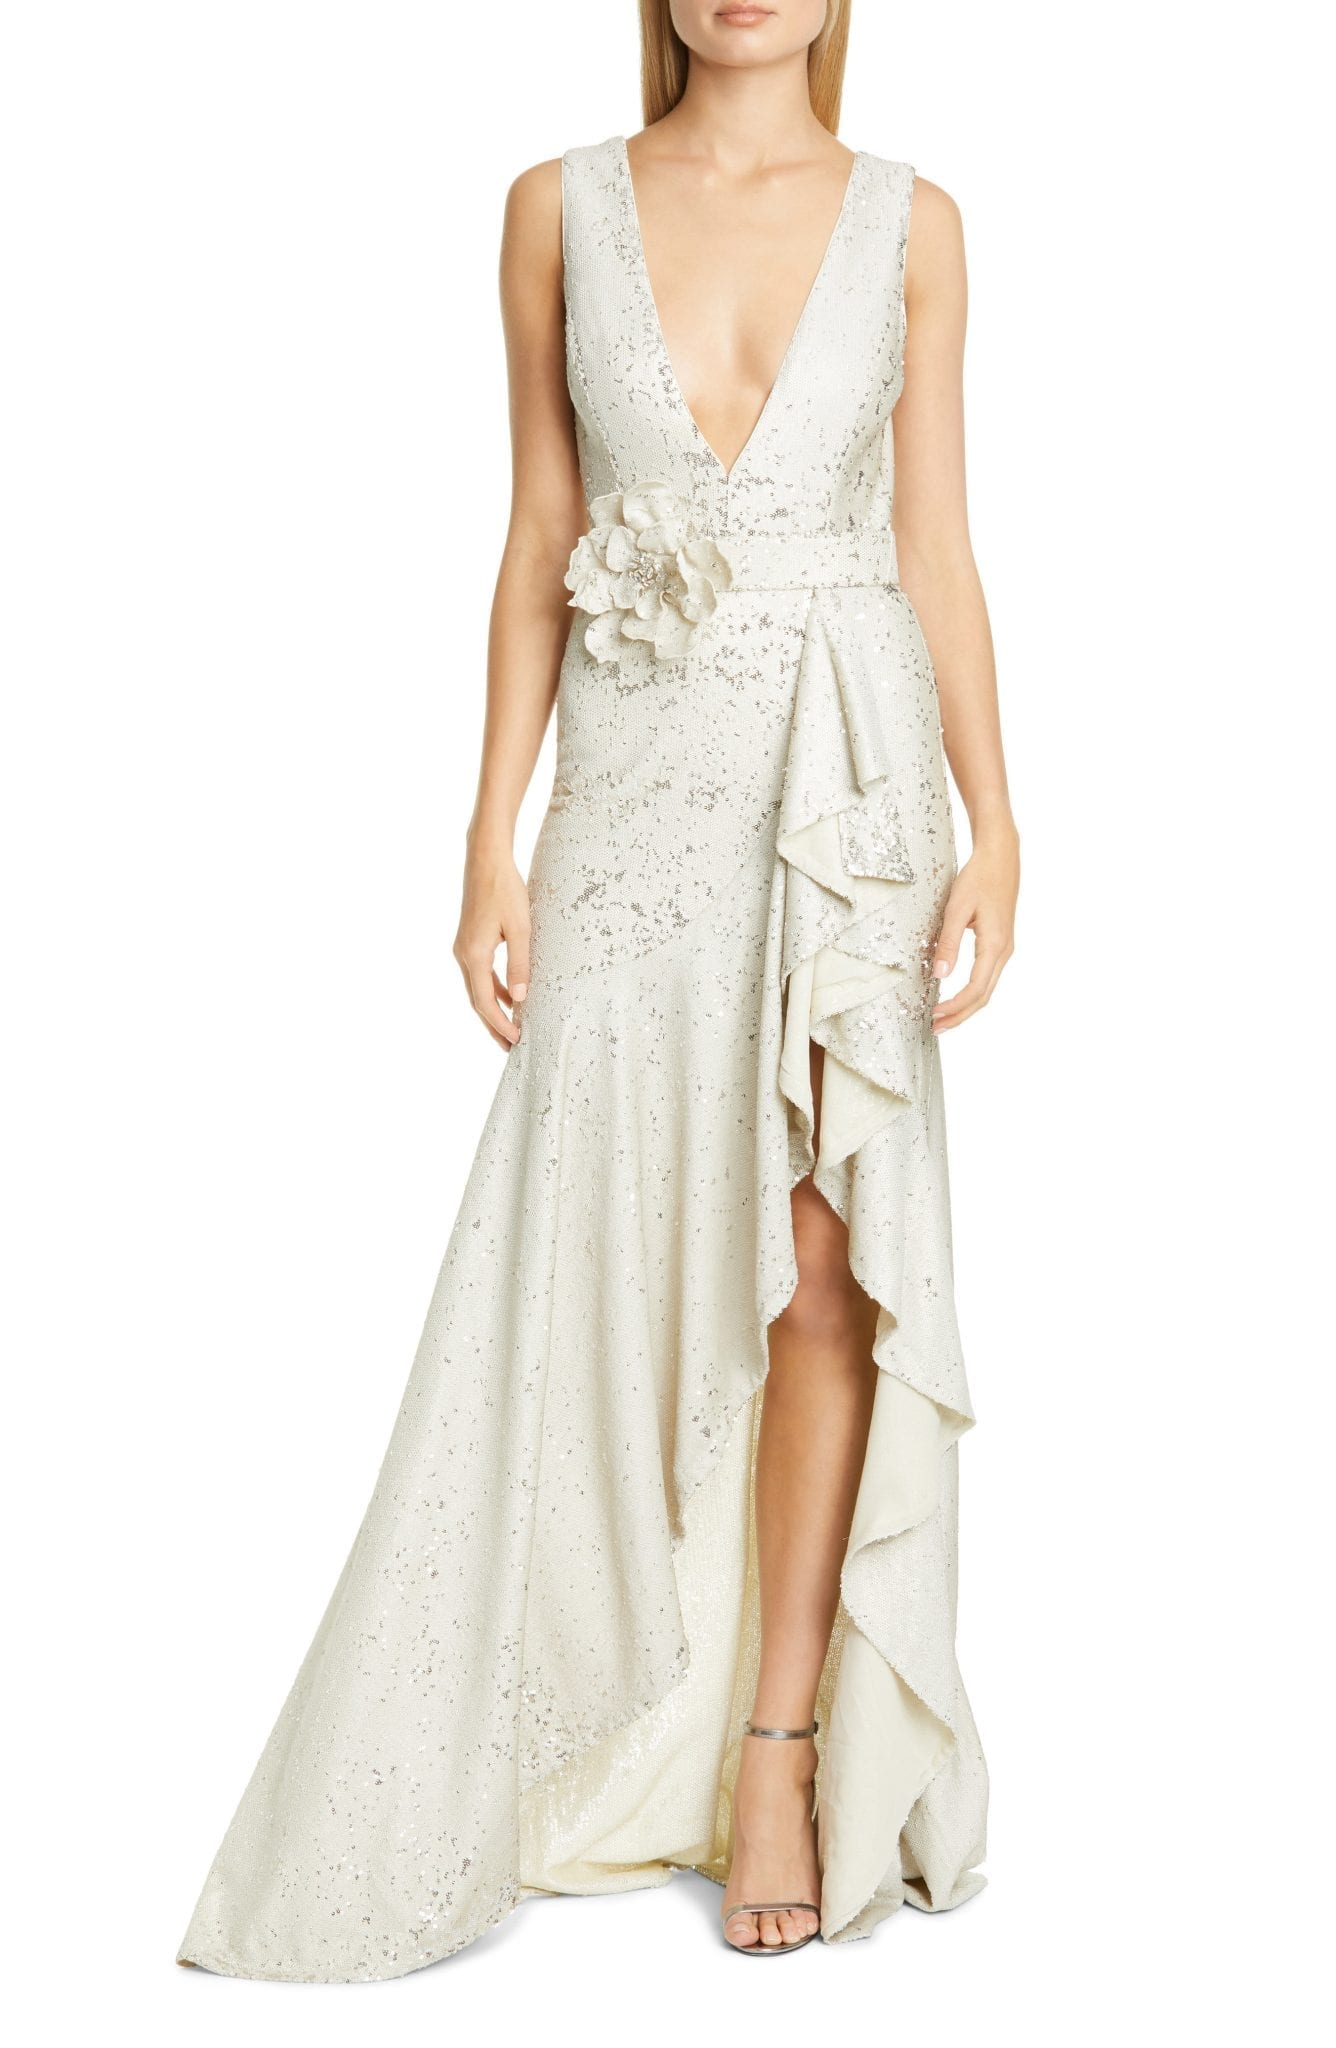 BADGLEY MISCHKA COLLECTION Badgley Mischka Sequin Ruffle Gown